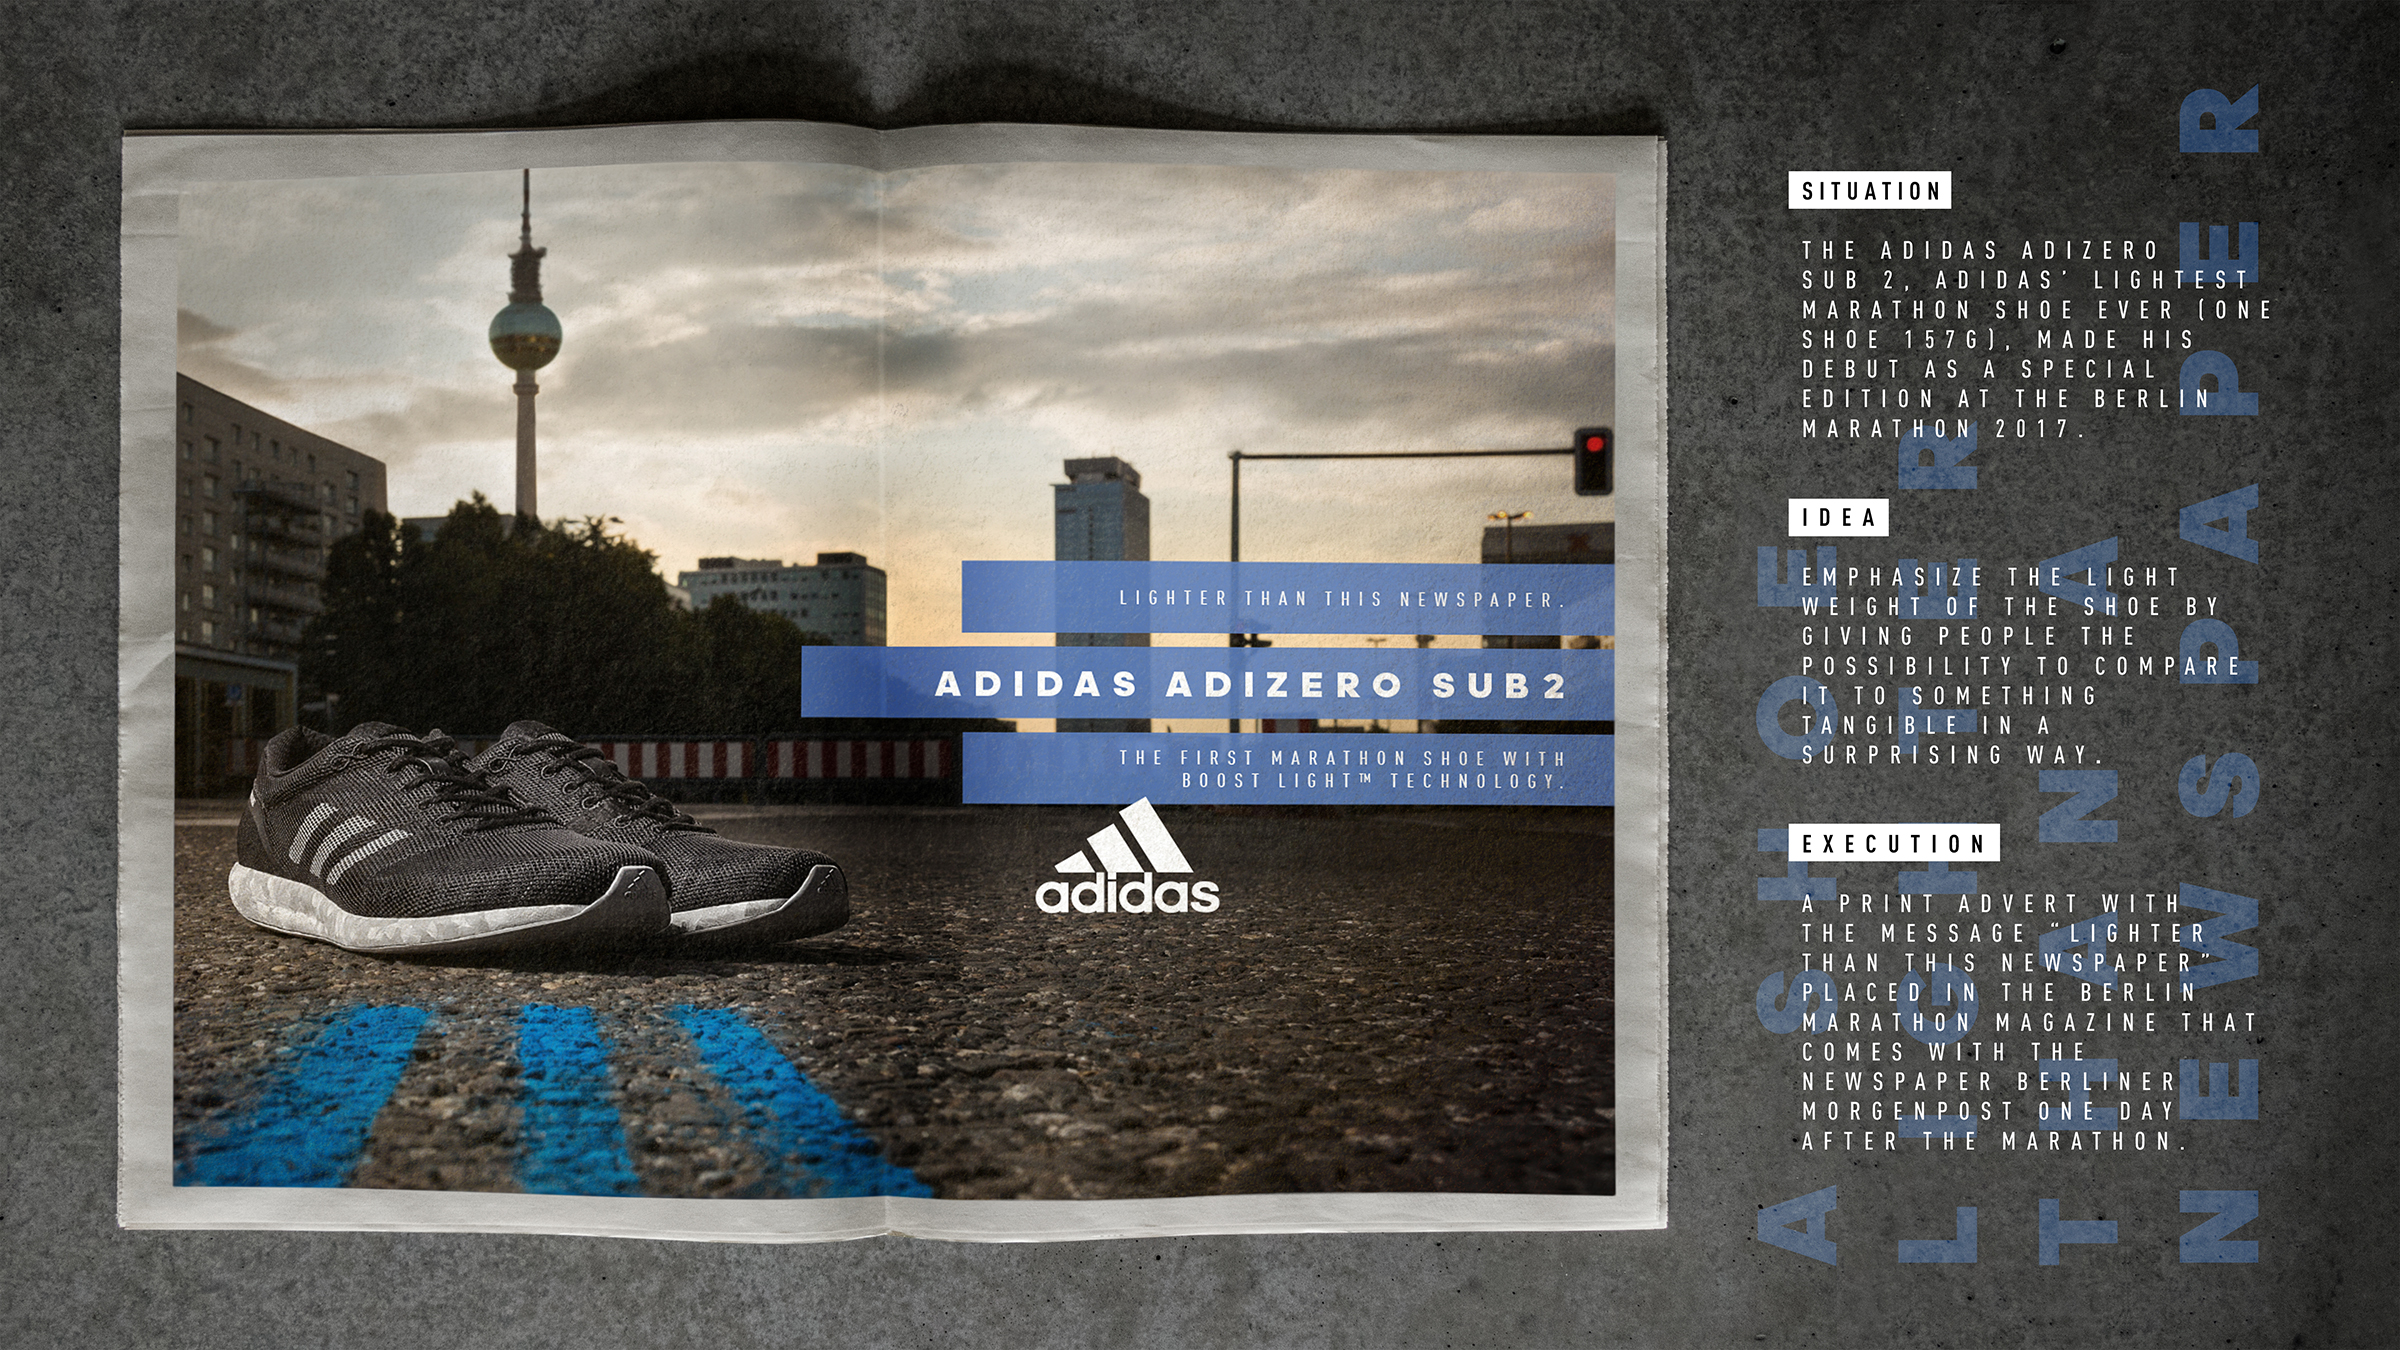 Design Len Berlin adidas print advert by heimat active adidas adizero sub 2 ads of